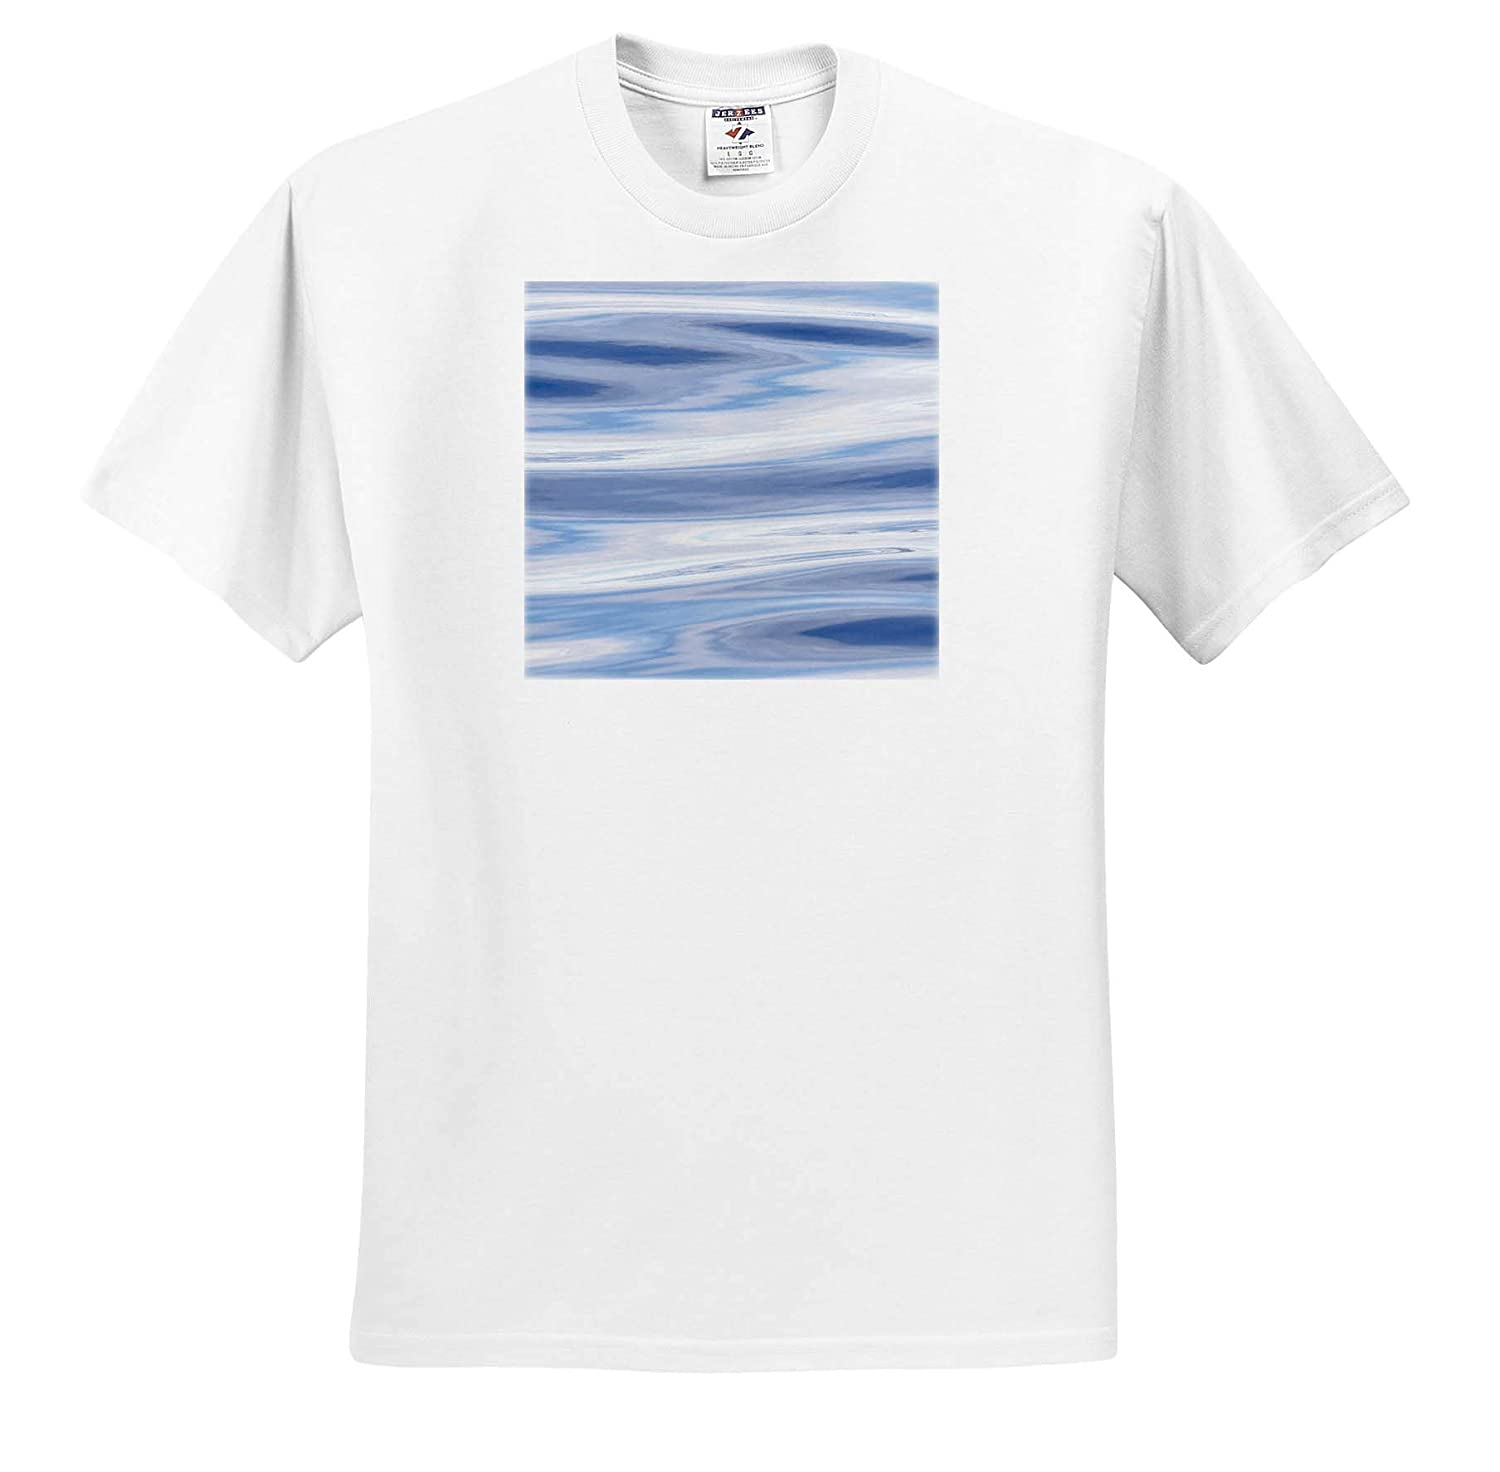 ts/_313896 3dRose Danita Delimont Waves Reflecting Sky in Blue Abstracts Grey and Silver - Adult T-Shirt XL